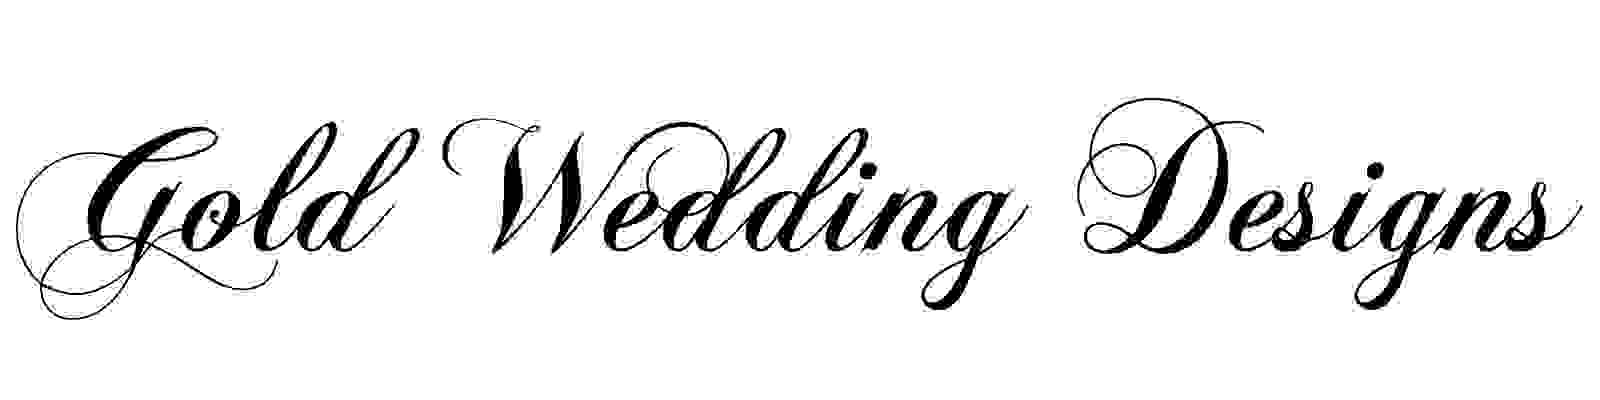 Gold Wedding Designs